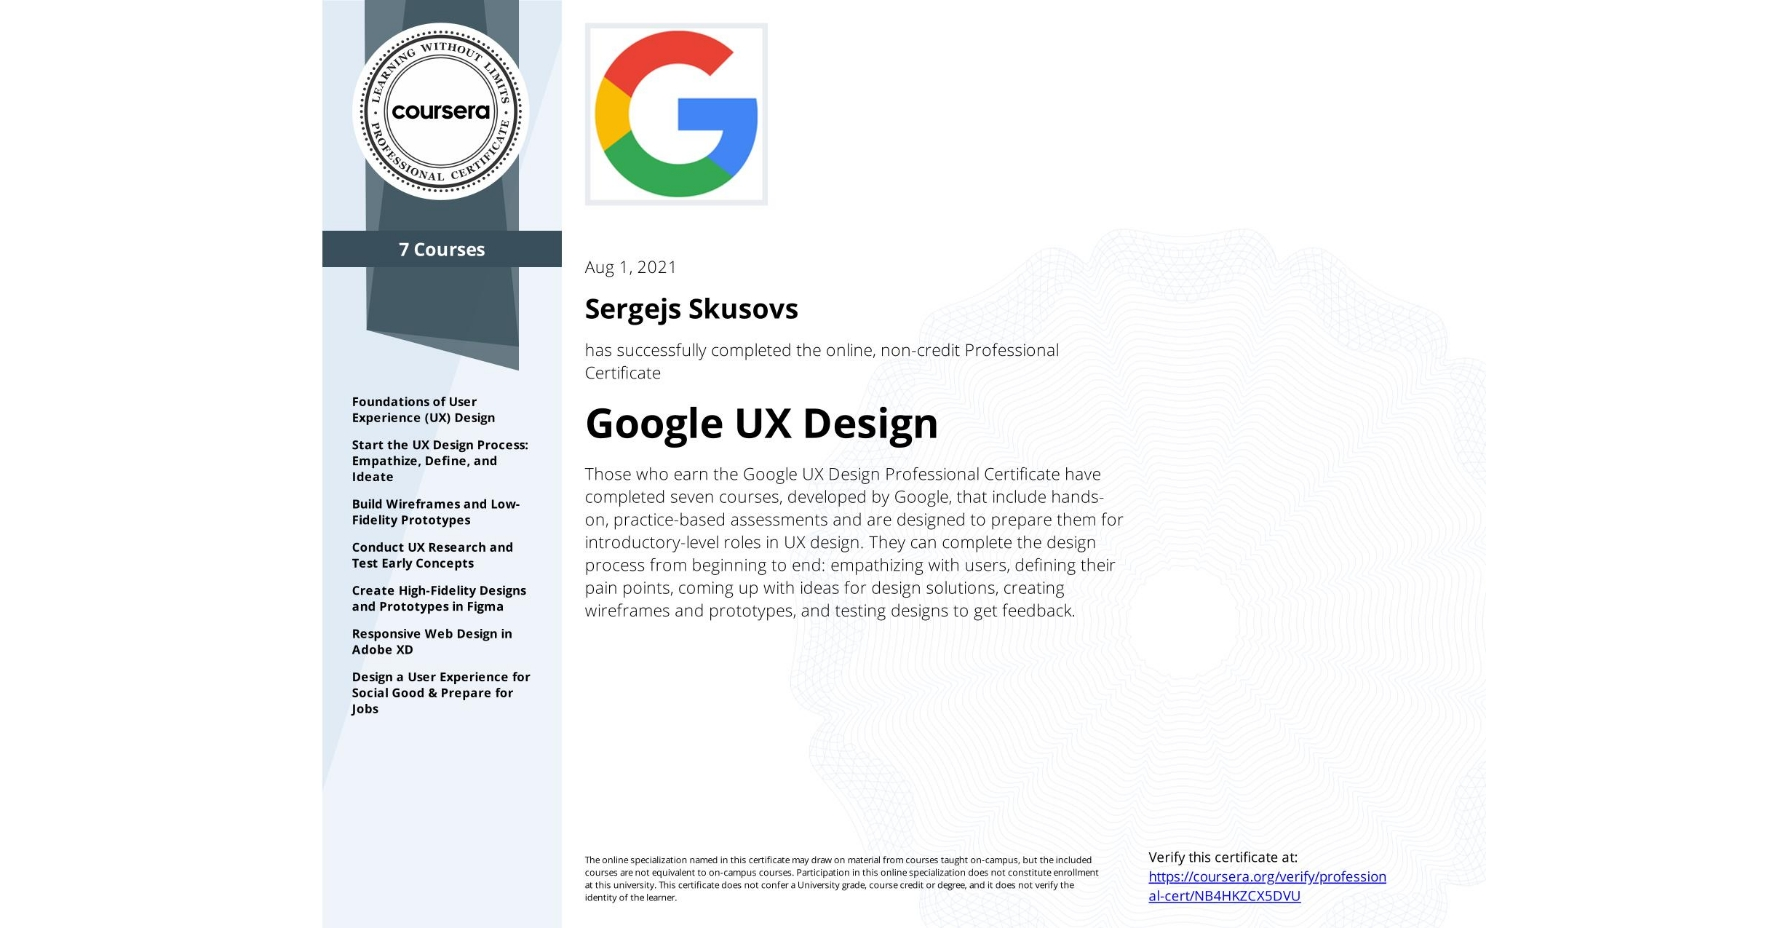 View certificate for Sergejs Skusovs, Google UX Design, offered through Coursera. Those who earn the Google UX Design Professional Certificate have completed seven courses, developed by Google, that include hands-on, practice-based assessments and are designed to prepare them for introductory-level roles in UX design. They can complete the design process from beginning to end: empathizing with users, defining their pain points, coming up with ideas for design solutions, creating wireframes and prototypes, and testing designs to get feedback.